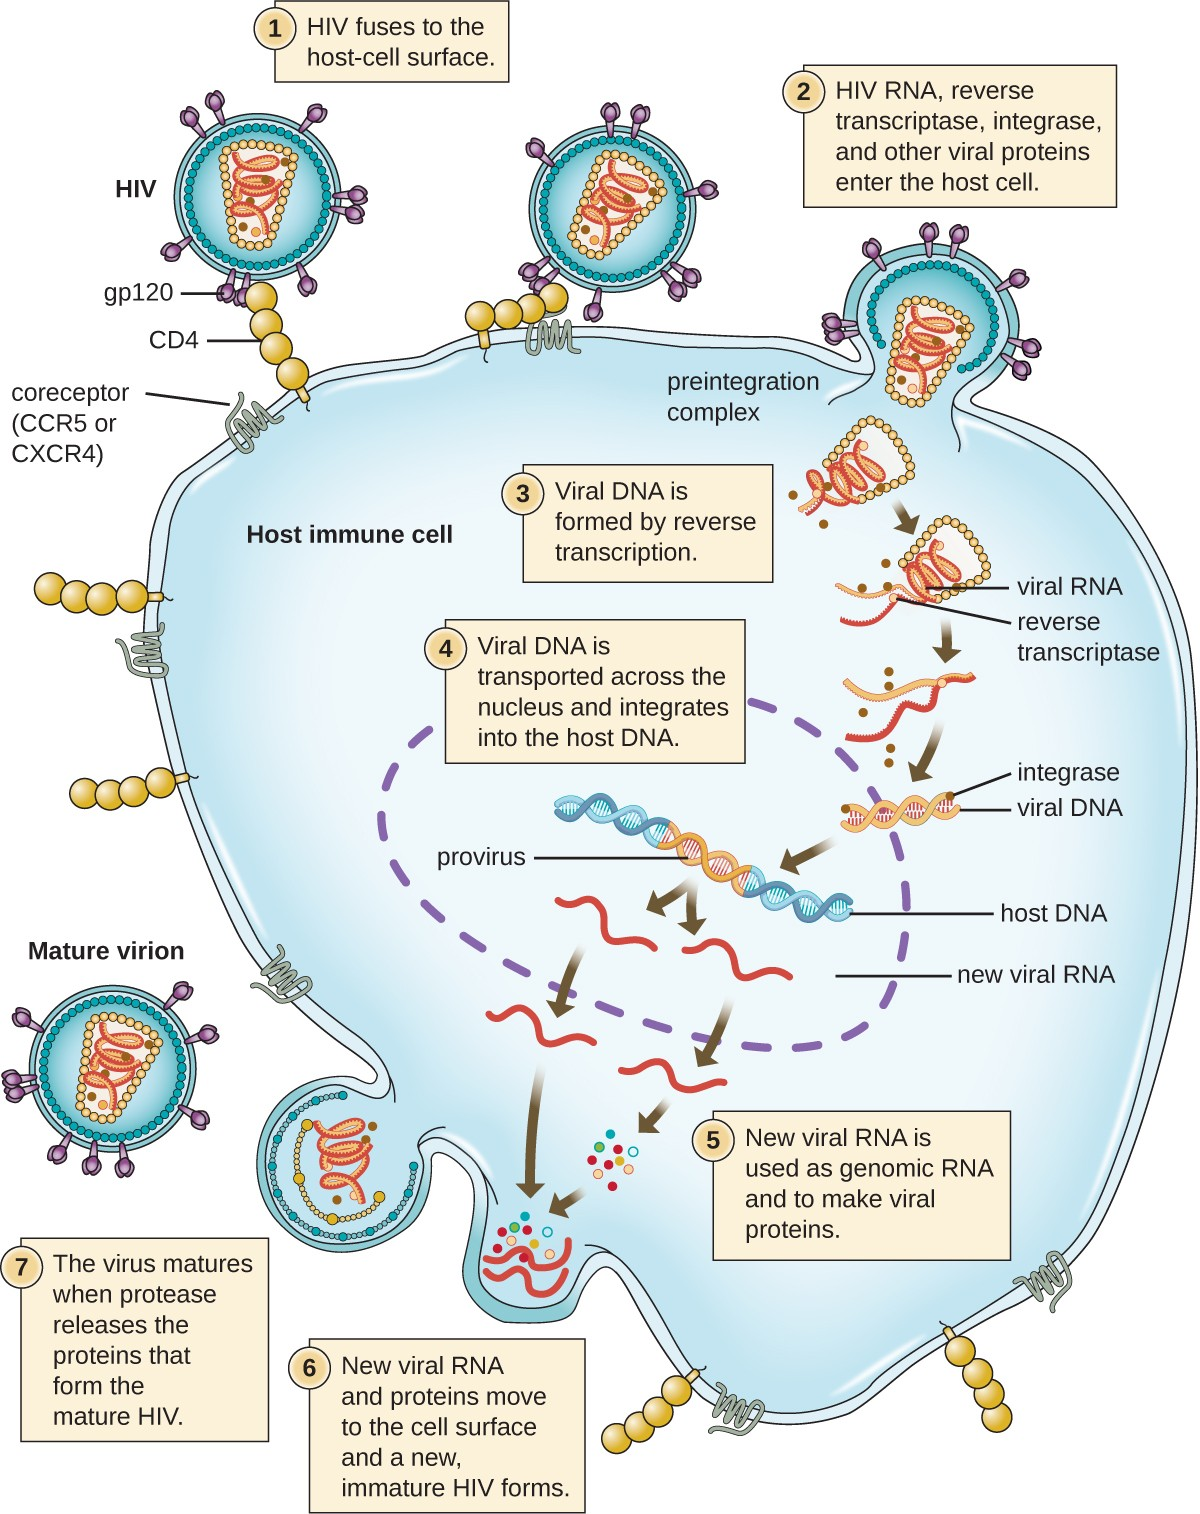 hight resolution of the hiv viral cycle step 1 the hiv fuses to the host cell